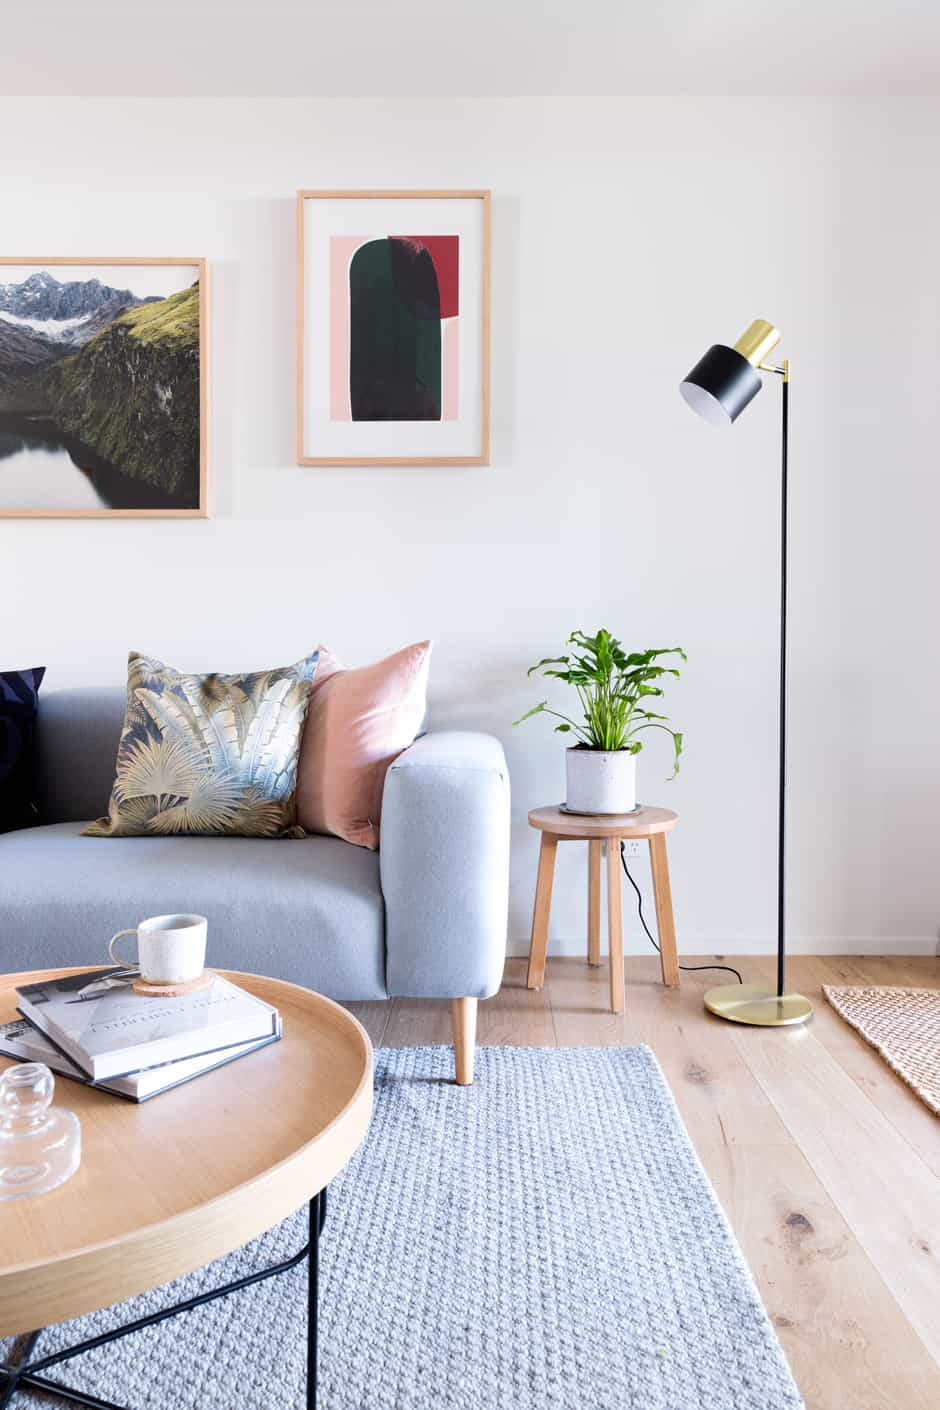 LIVING Photographic artwork South (left) by Brooke Holm and No 14 by Berit Mogensen Lopez hang above a sofa and coffee table from Città. The floor lamp is from Lighting Direct, and the Sherpa Weave rug by Armadillo & Co is from The Ivy House.